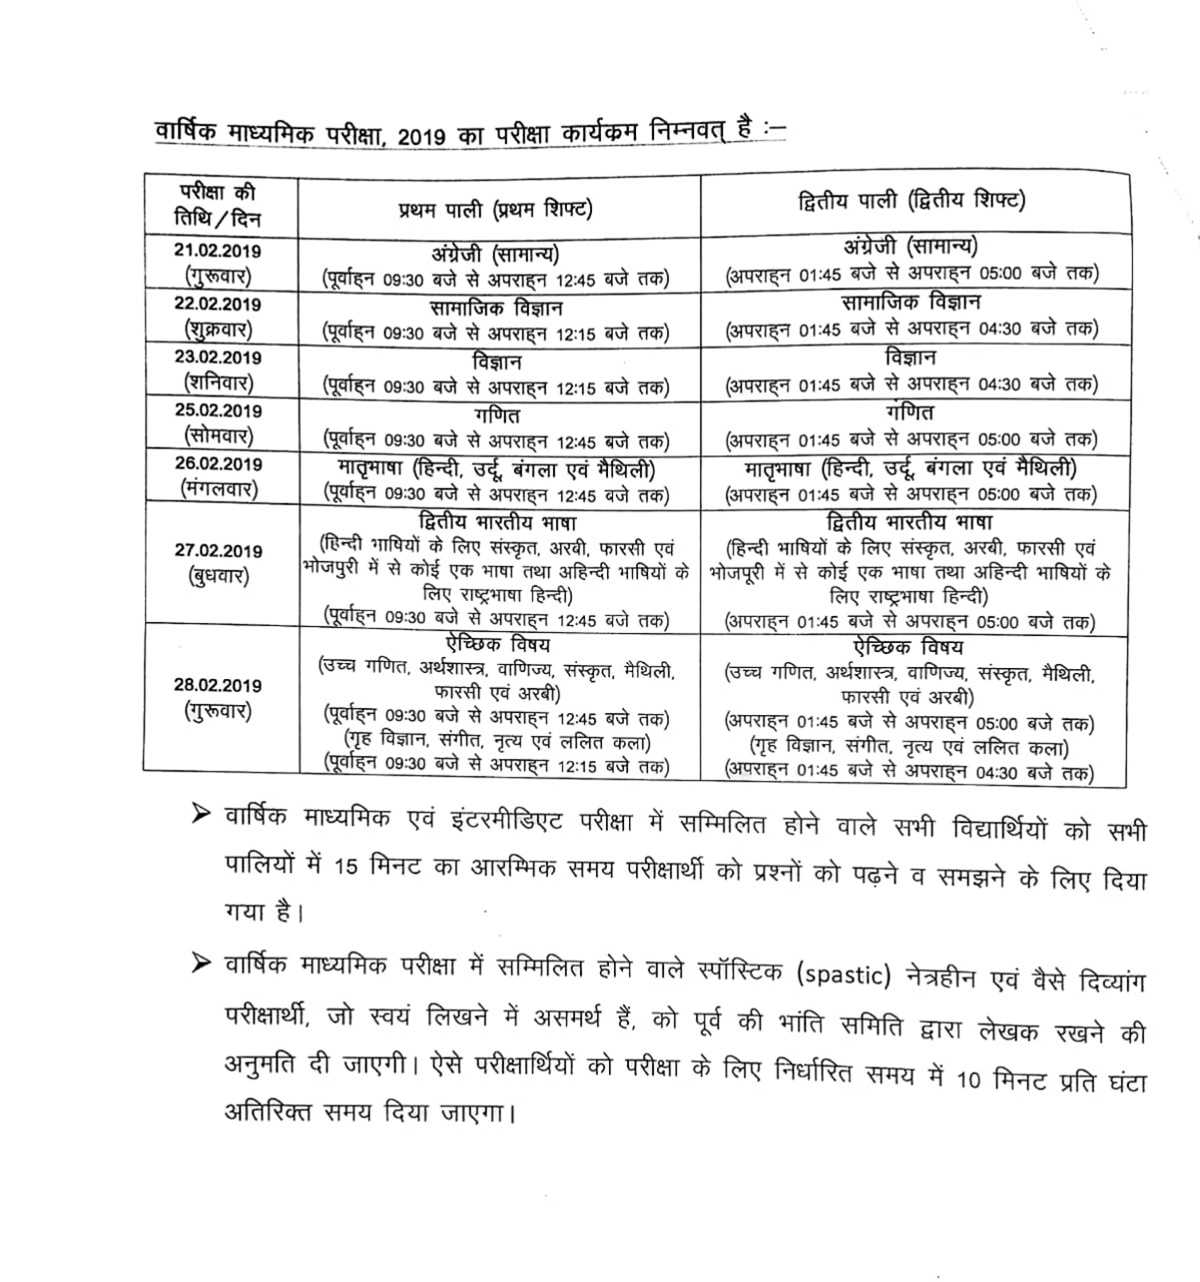 Bihar Board 10th/Matric Routine 2019